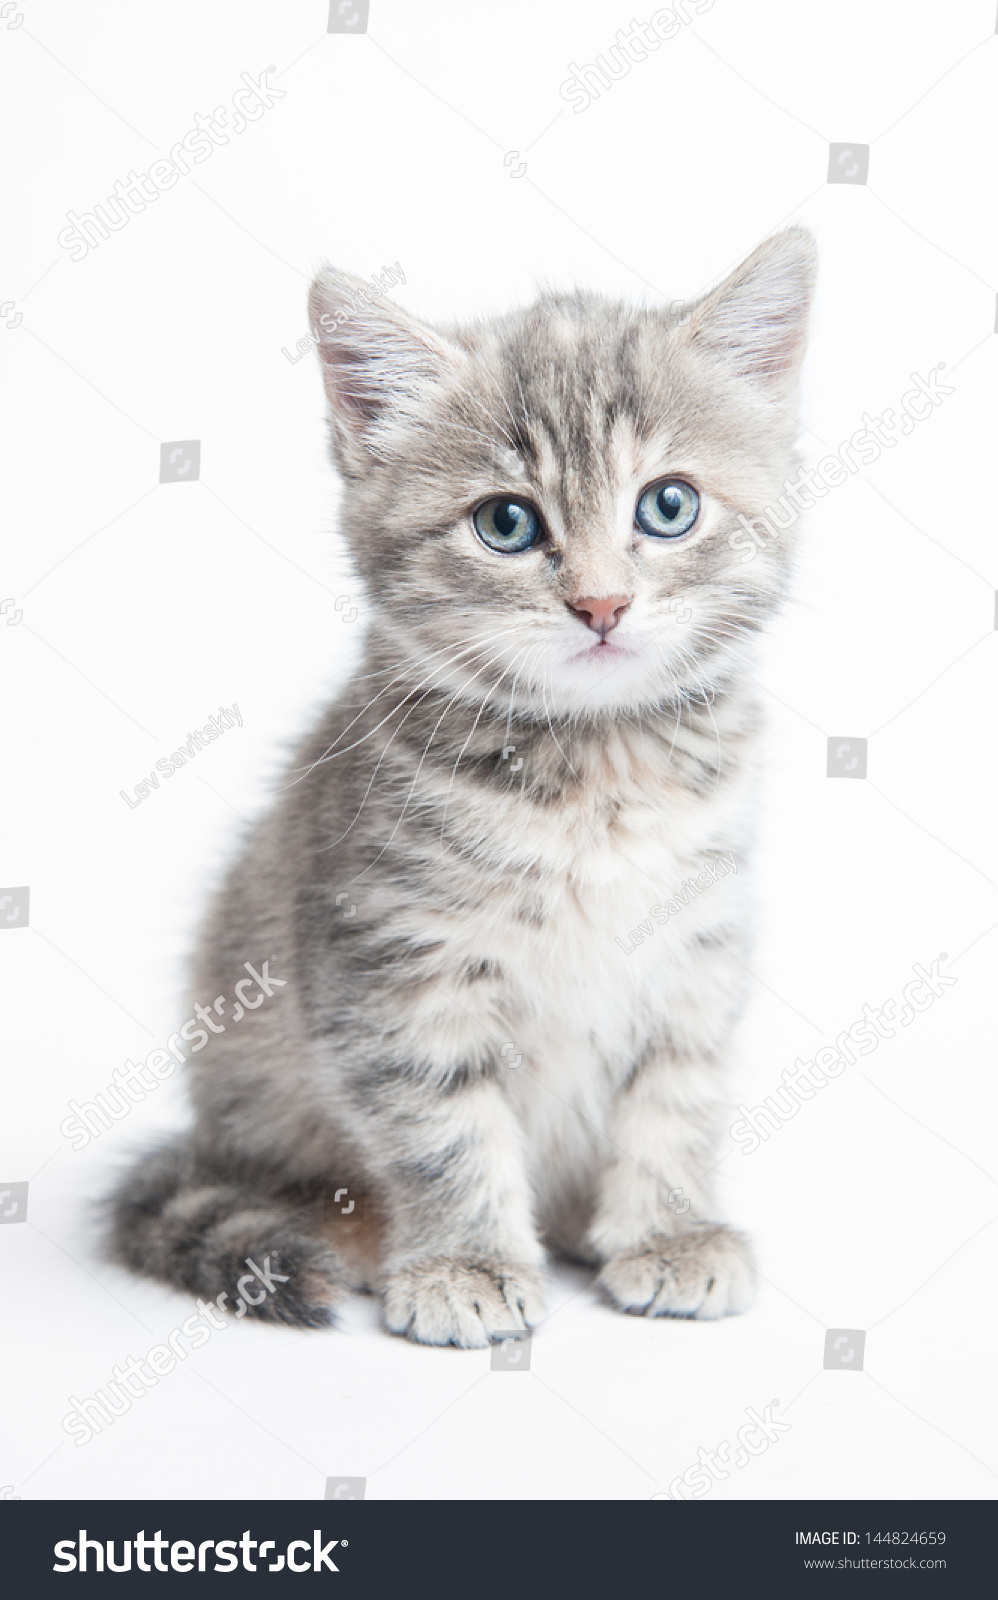 Grey With Black Striped Cat Names